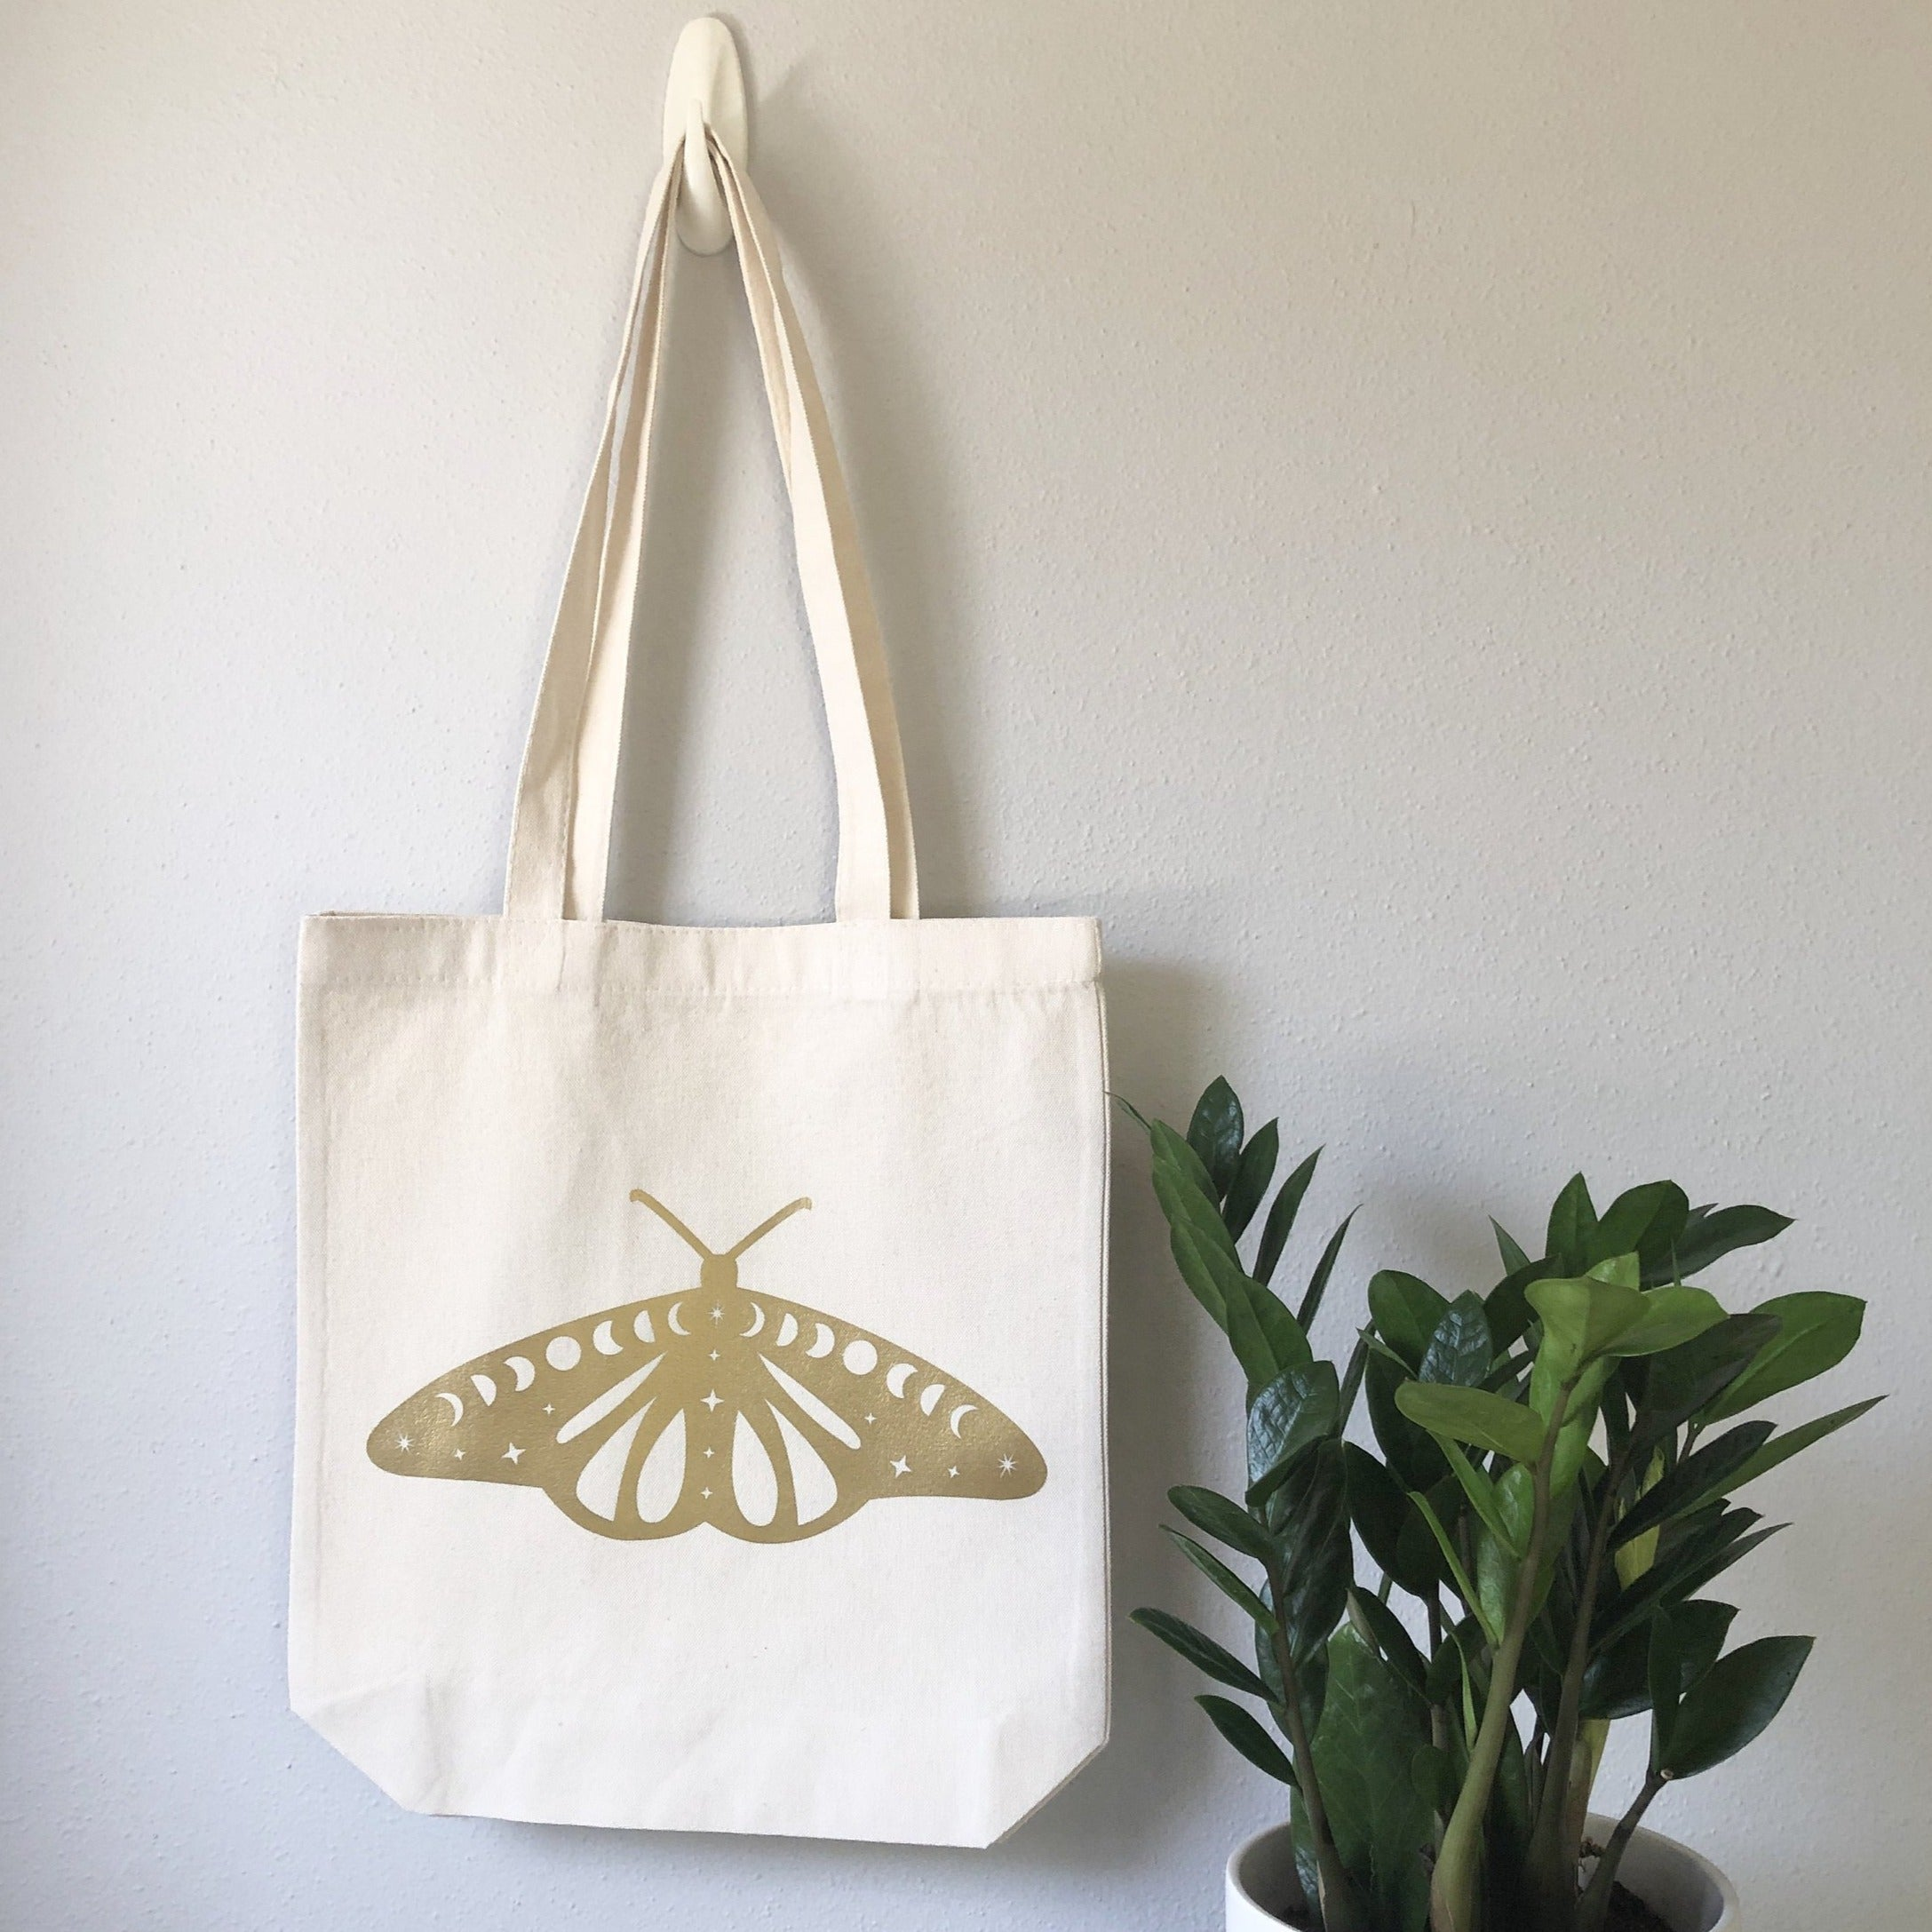 Cosmic Moth Witchy Canvas Tote Bag - White